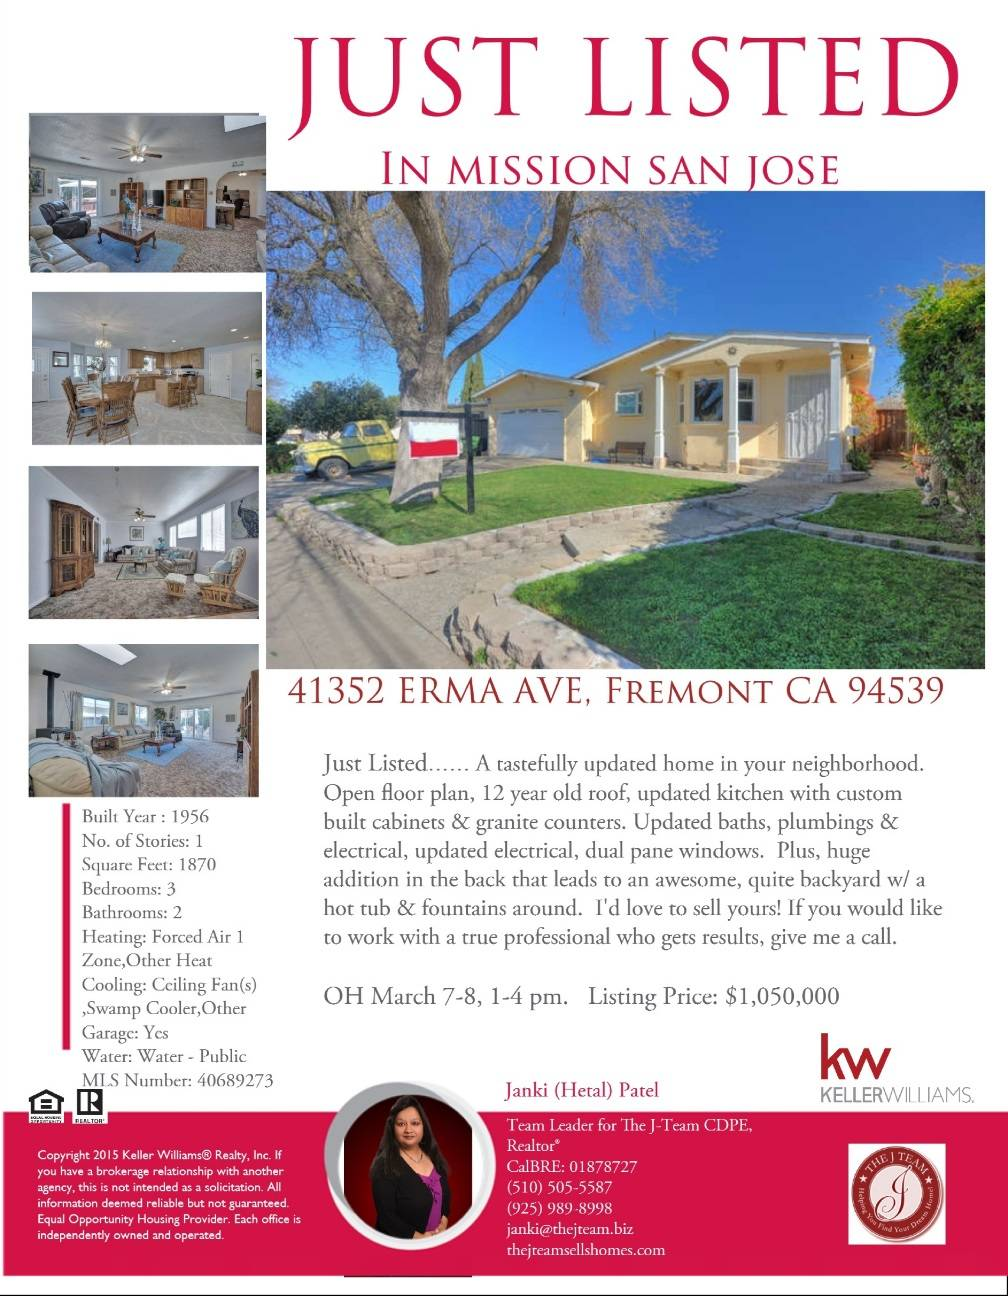 mission san jose home just listed open house this wee just listed open house this weekend 1 4